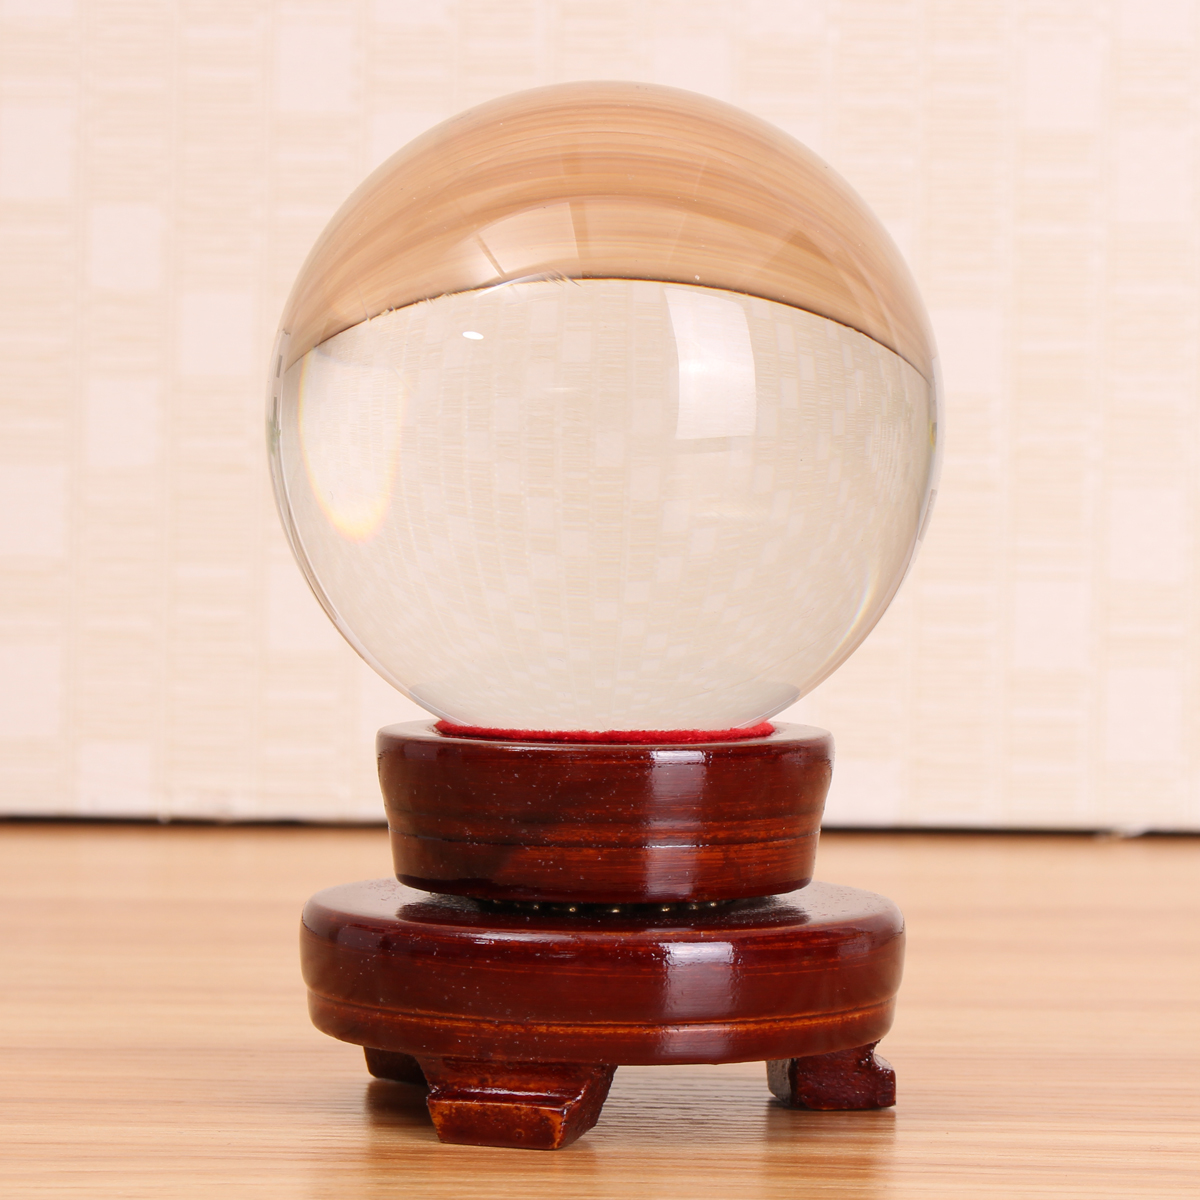 Clear Quartz Glass Magic Crystal Healing Ball Sphere With Stand Hobbies Kids Toys Home Decorations